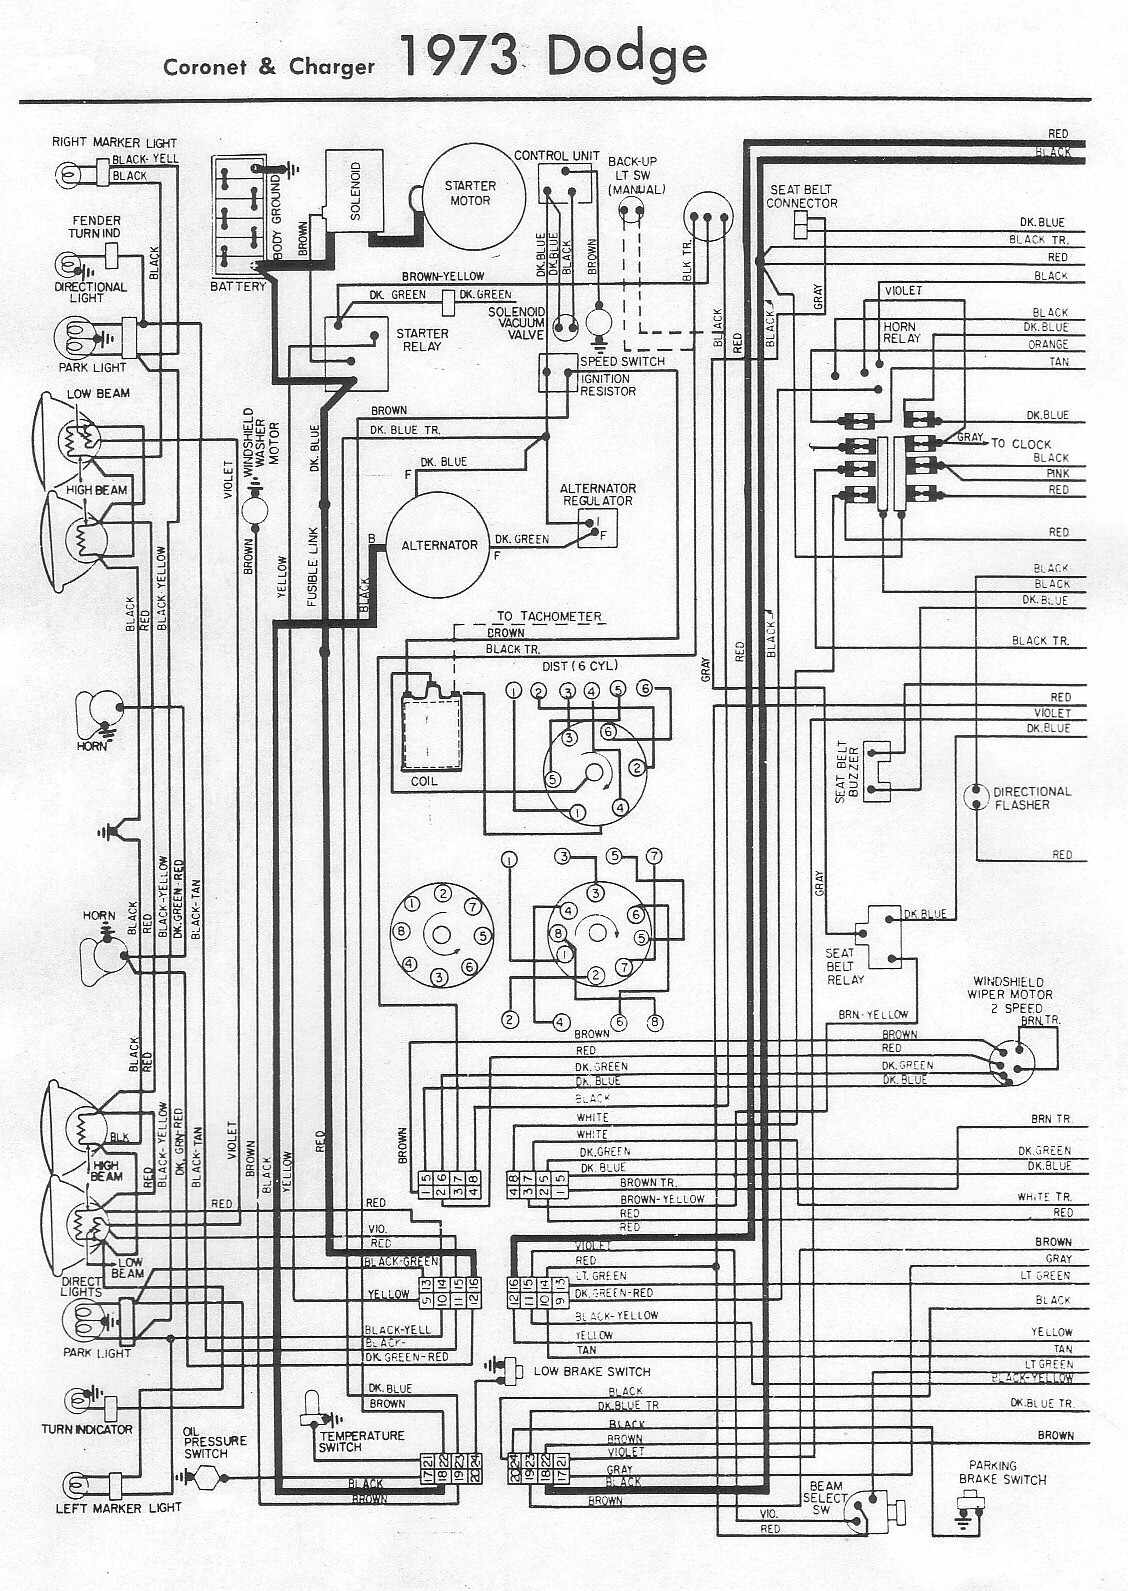 hight resolution of 1973 glastron wiring diagram wiring diagram blogs bennington wiring diagram 1973 glastron wiring diagram wiring diagram